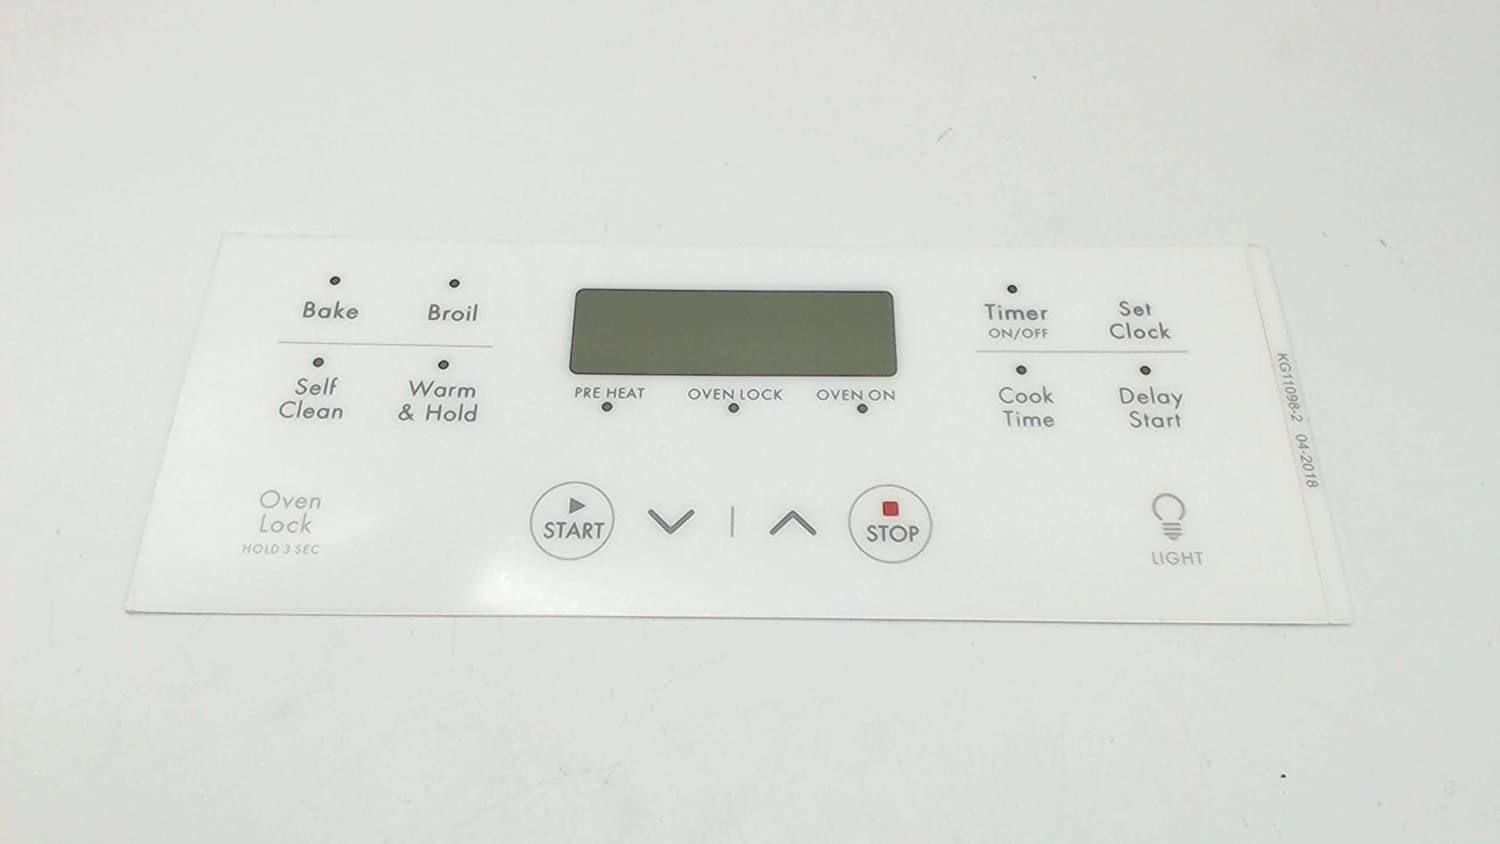 316633003 Overlay Compatible With Frigidaire Stove Oven Ranges